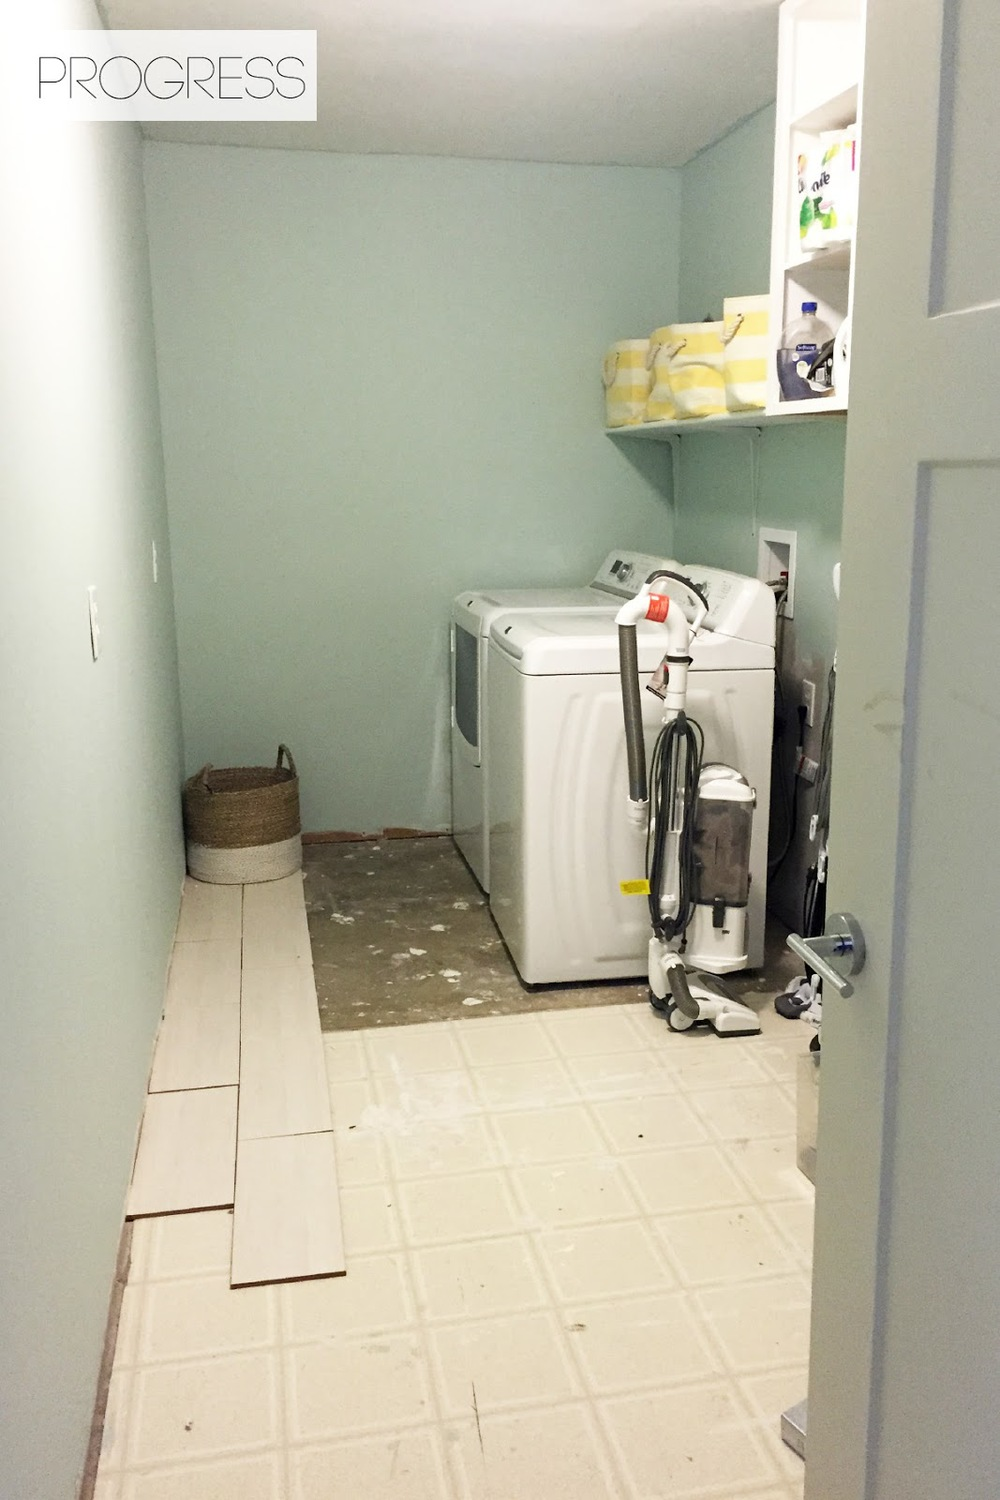 laundry_room_progress.jpg